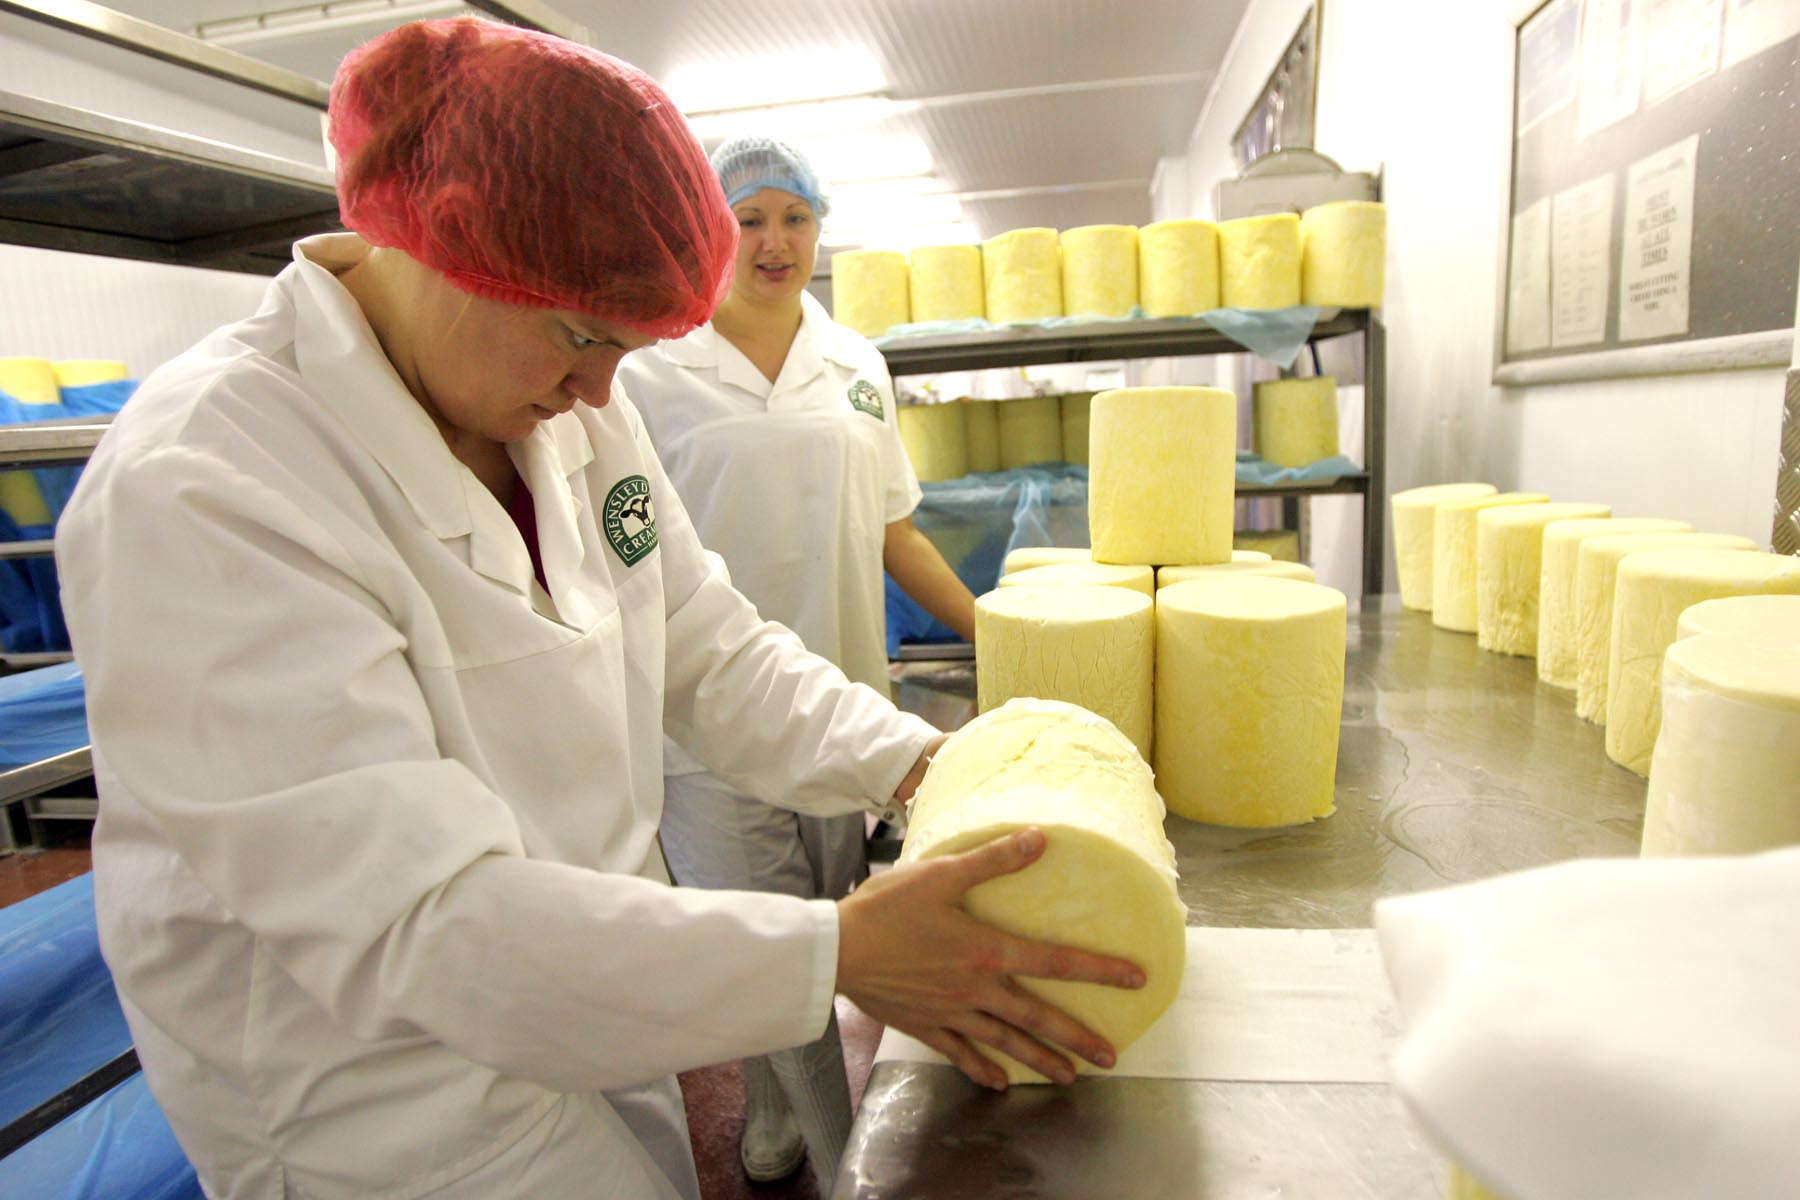 One of North Yorkshire's many local products, Yorkshire Wensleydale, being made at the Wensleydale Creamery, in Hawes. A food festival in Wensleydale has been celebrating artisan producers